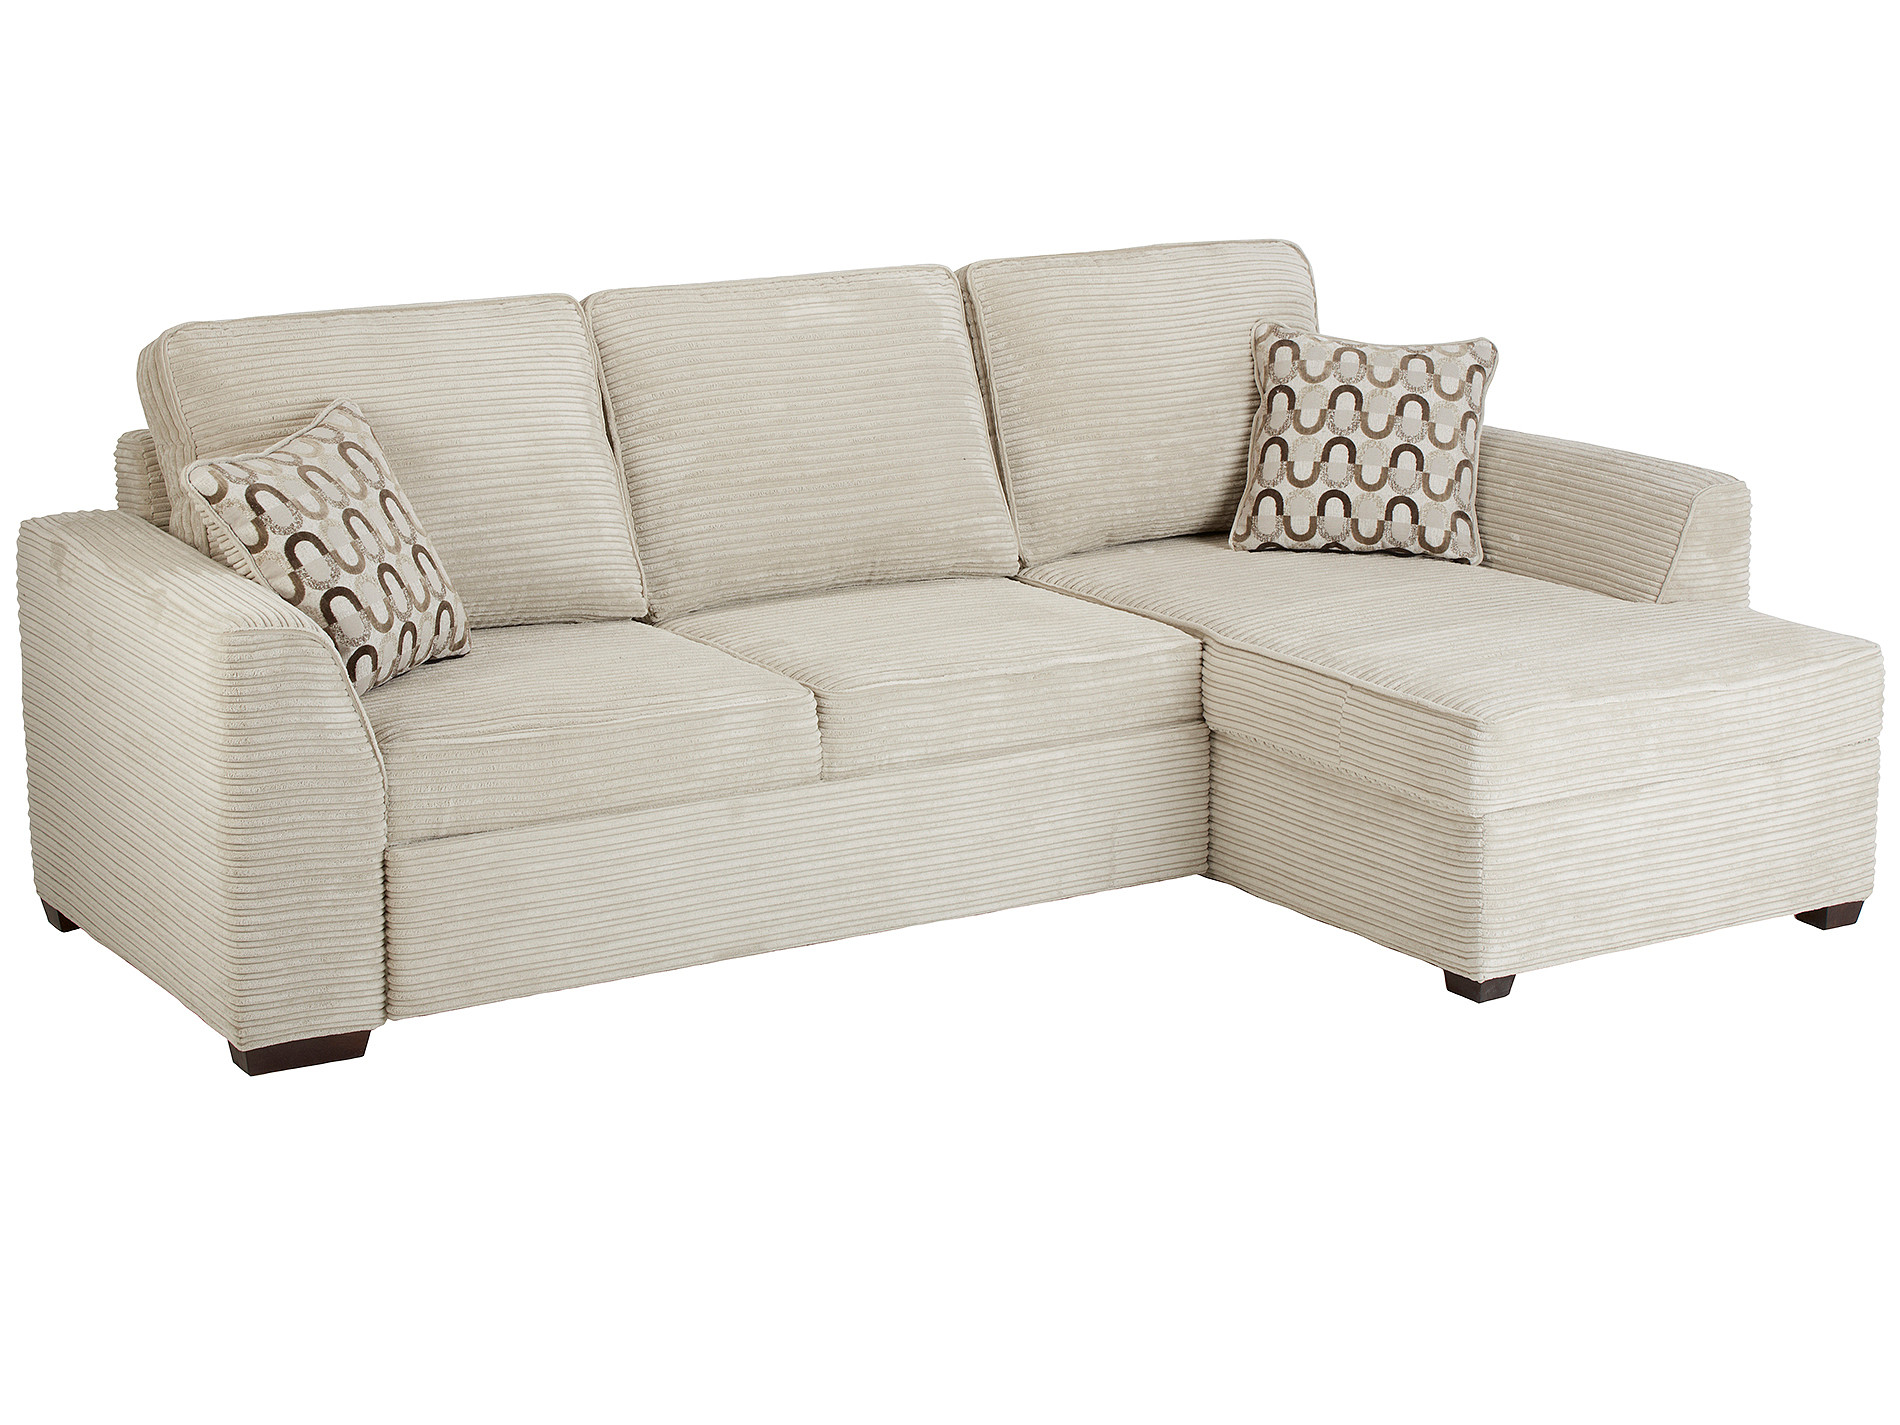 whitney corner sofa right facing in cord fawn. Black Bedroom Furniture Sets. Home Design Ideas